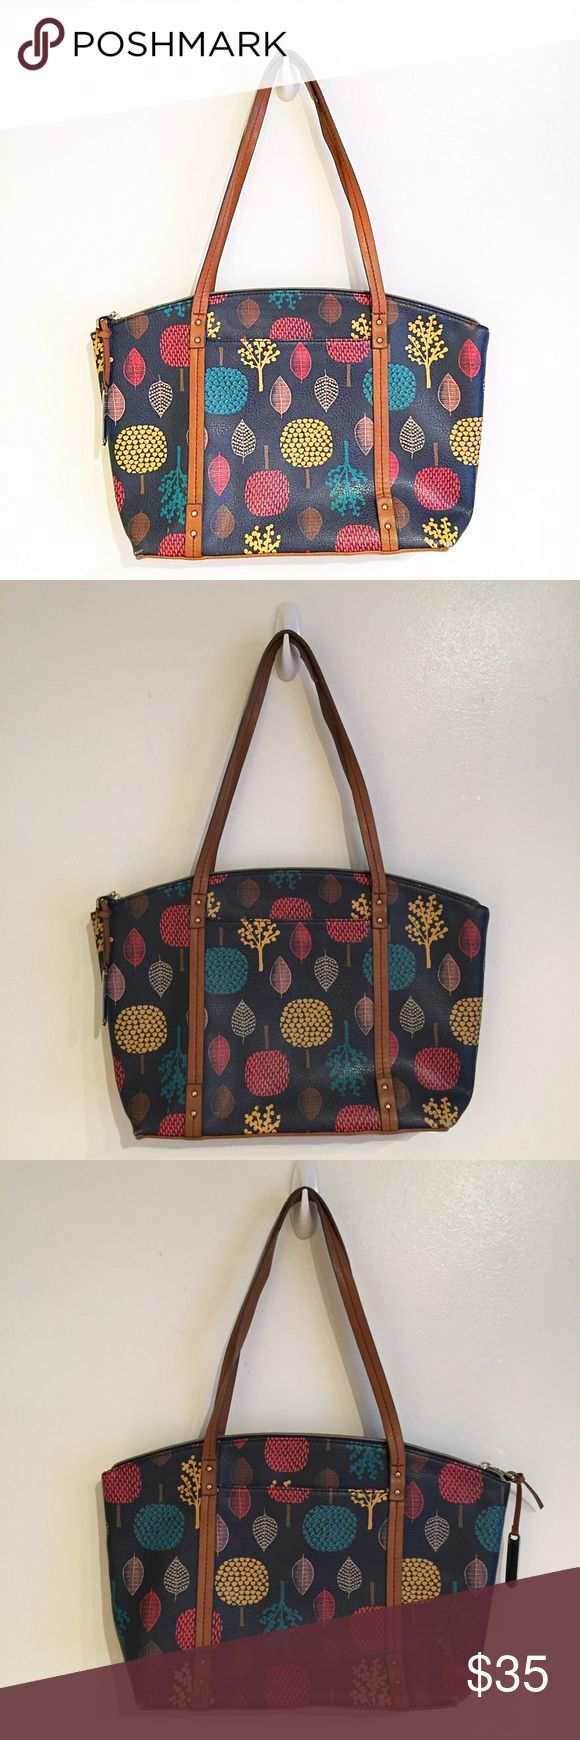 """Relic Leaf & Tree Print Tote Purse Relic by Fossil. Tree and leaf print purse. Zips closed. Front and back slip pockets. Two slip pockets and a zippered pocket inside. Measures 12"""" Wide at the base, 15"""" at the widest, and 10"""" tall. Very minor wear on the corners. #relic #leaf #tree #print #nature #purse #tote #pockets #neutral #zips #punkydoodle  No modeling Smoke free home I do discount bundles Relic Bags Shoulder Bags"""